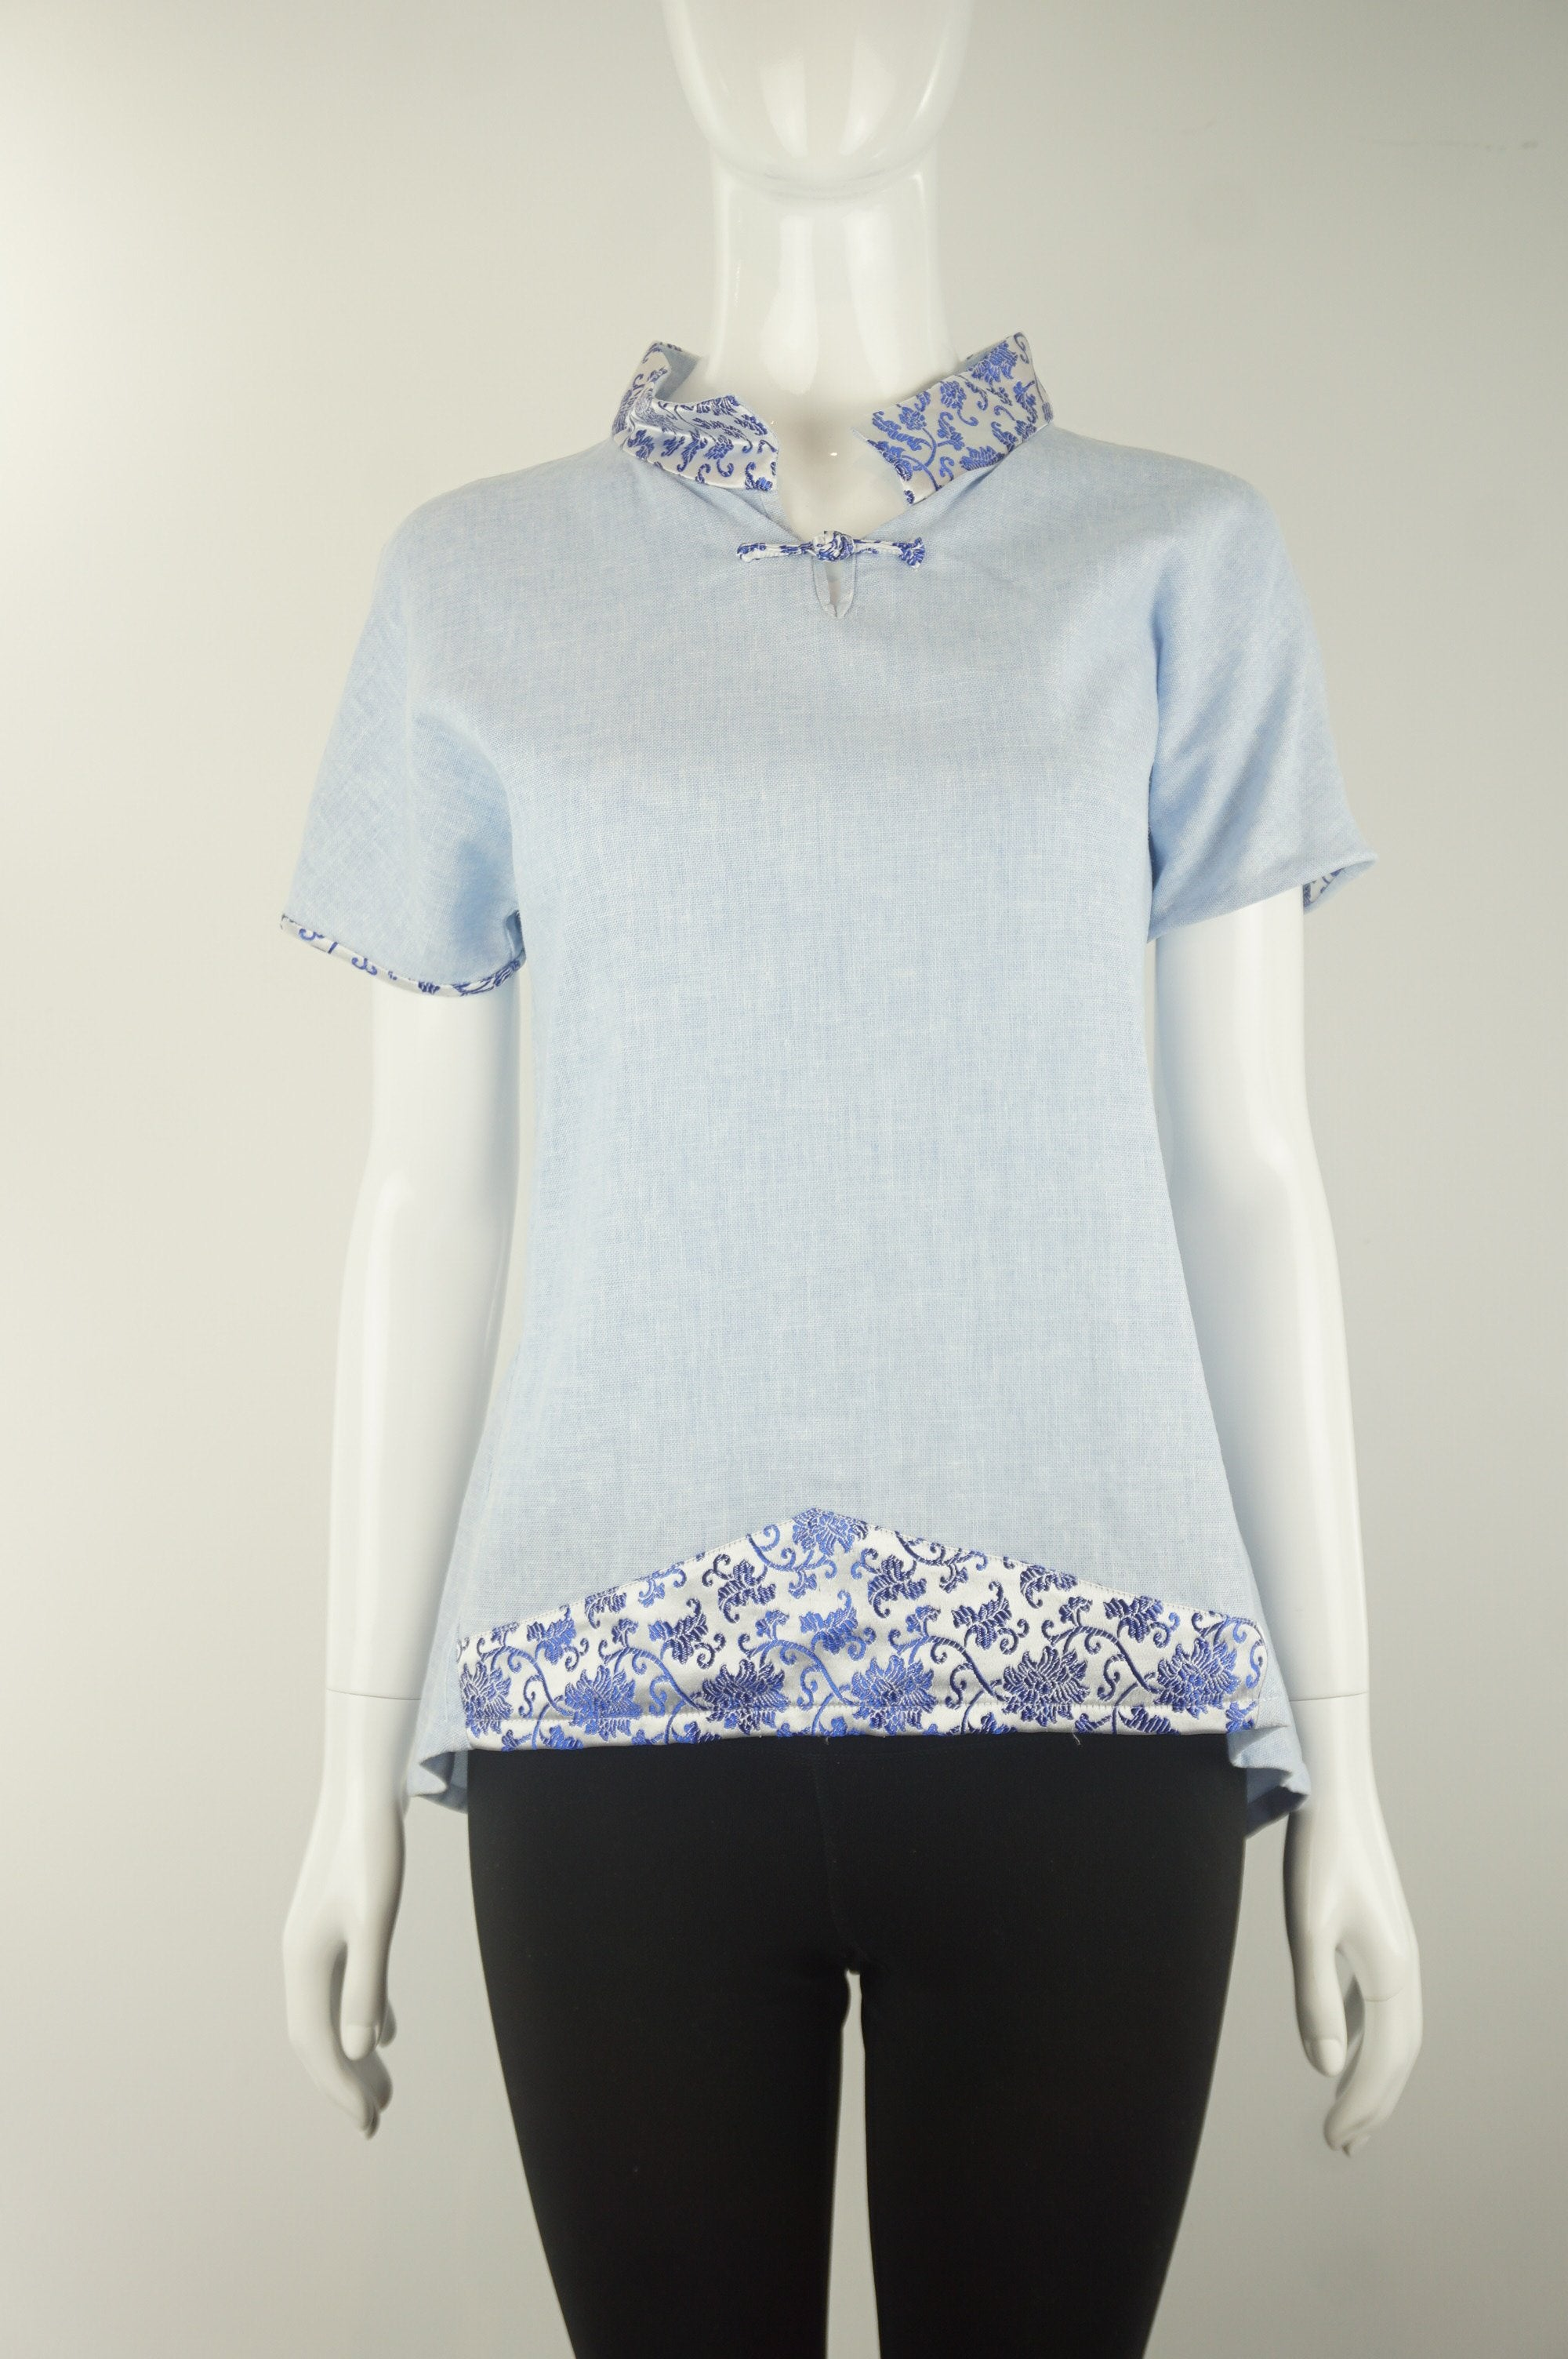 Elli Share Traditional Chinese Style Inspired Top, Unique design featuring traditional Chinese cultural elements but creative modern design. One of a kind grab., Blue, White, Linen, women's Tops, women's Blue, White Tops, Elli Share women's Tops, elegant top, traditional Chinese style top maderin collar, linen shirt, comfortable qibao inspired linen shirt